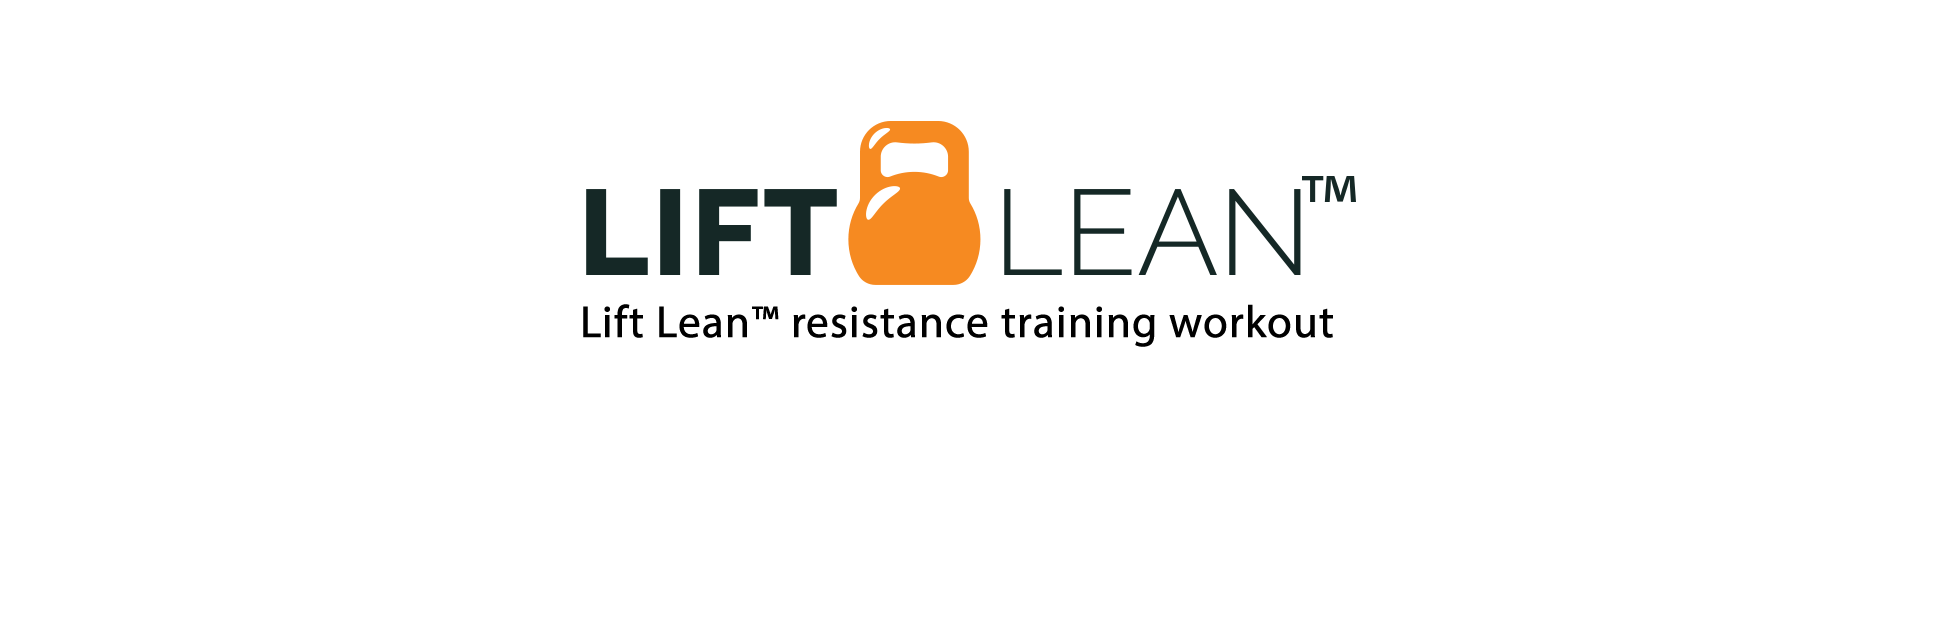 lift lean resitance training